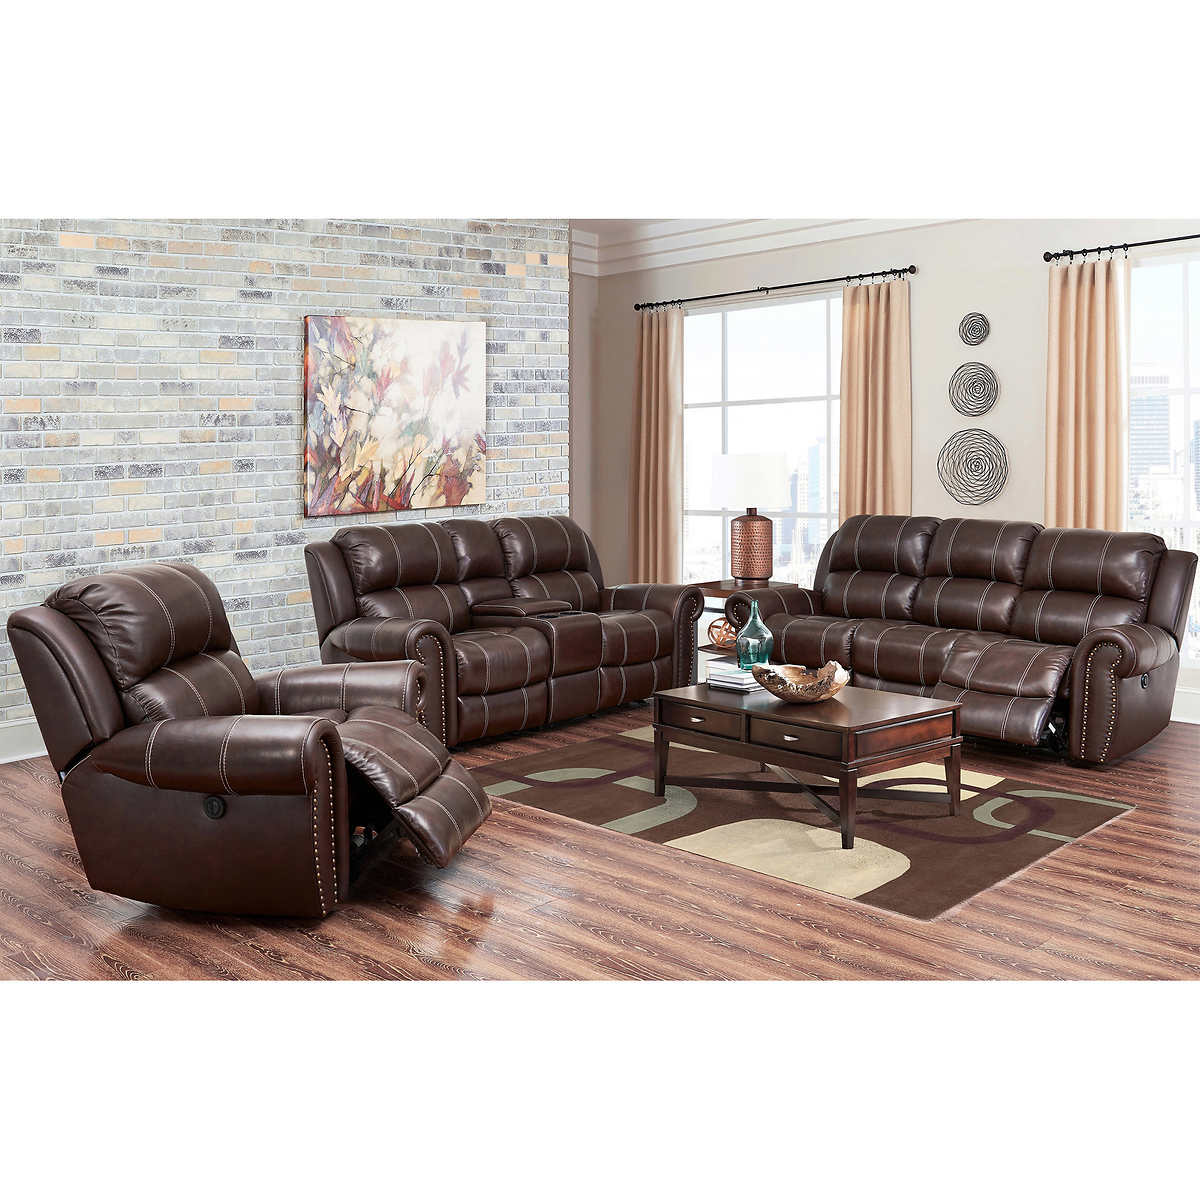 recliners | costco